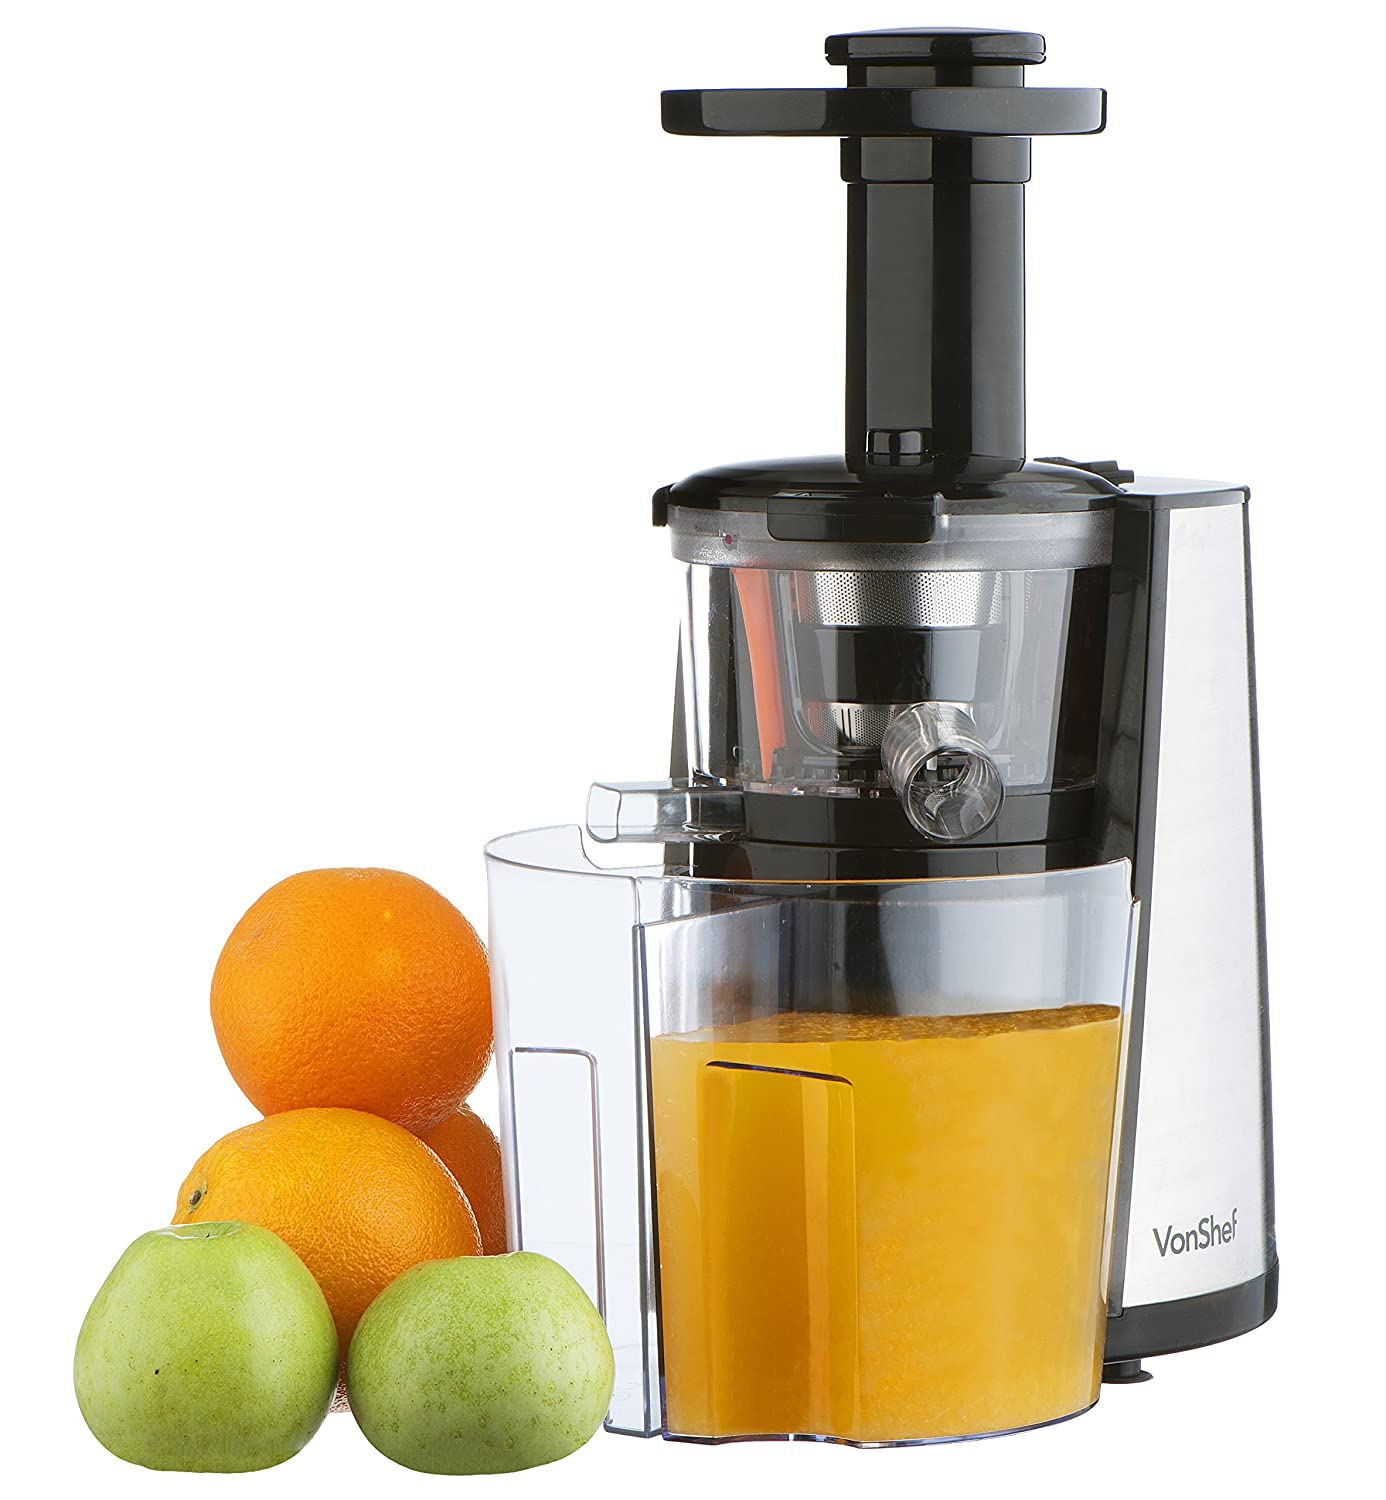 Slow Juicer Best I Test 2017 : Top 10 Best Masticating Juicers 2016-2017 on Flipboard